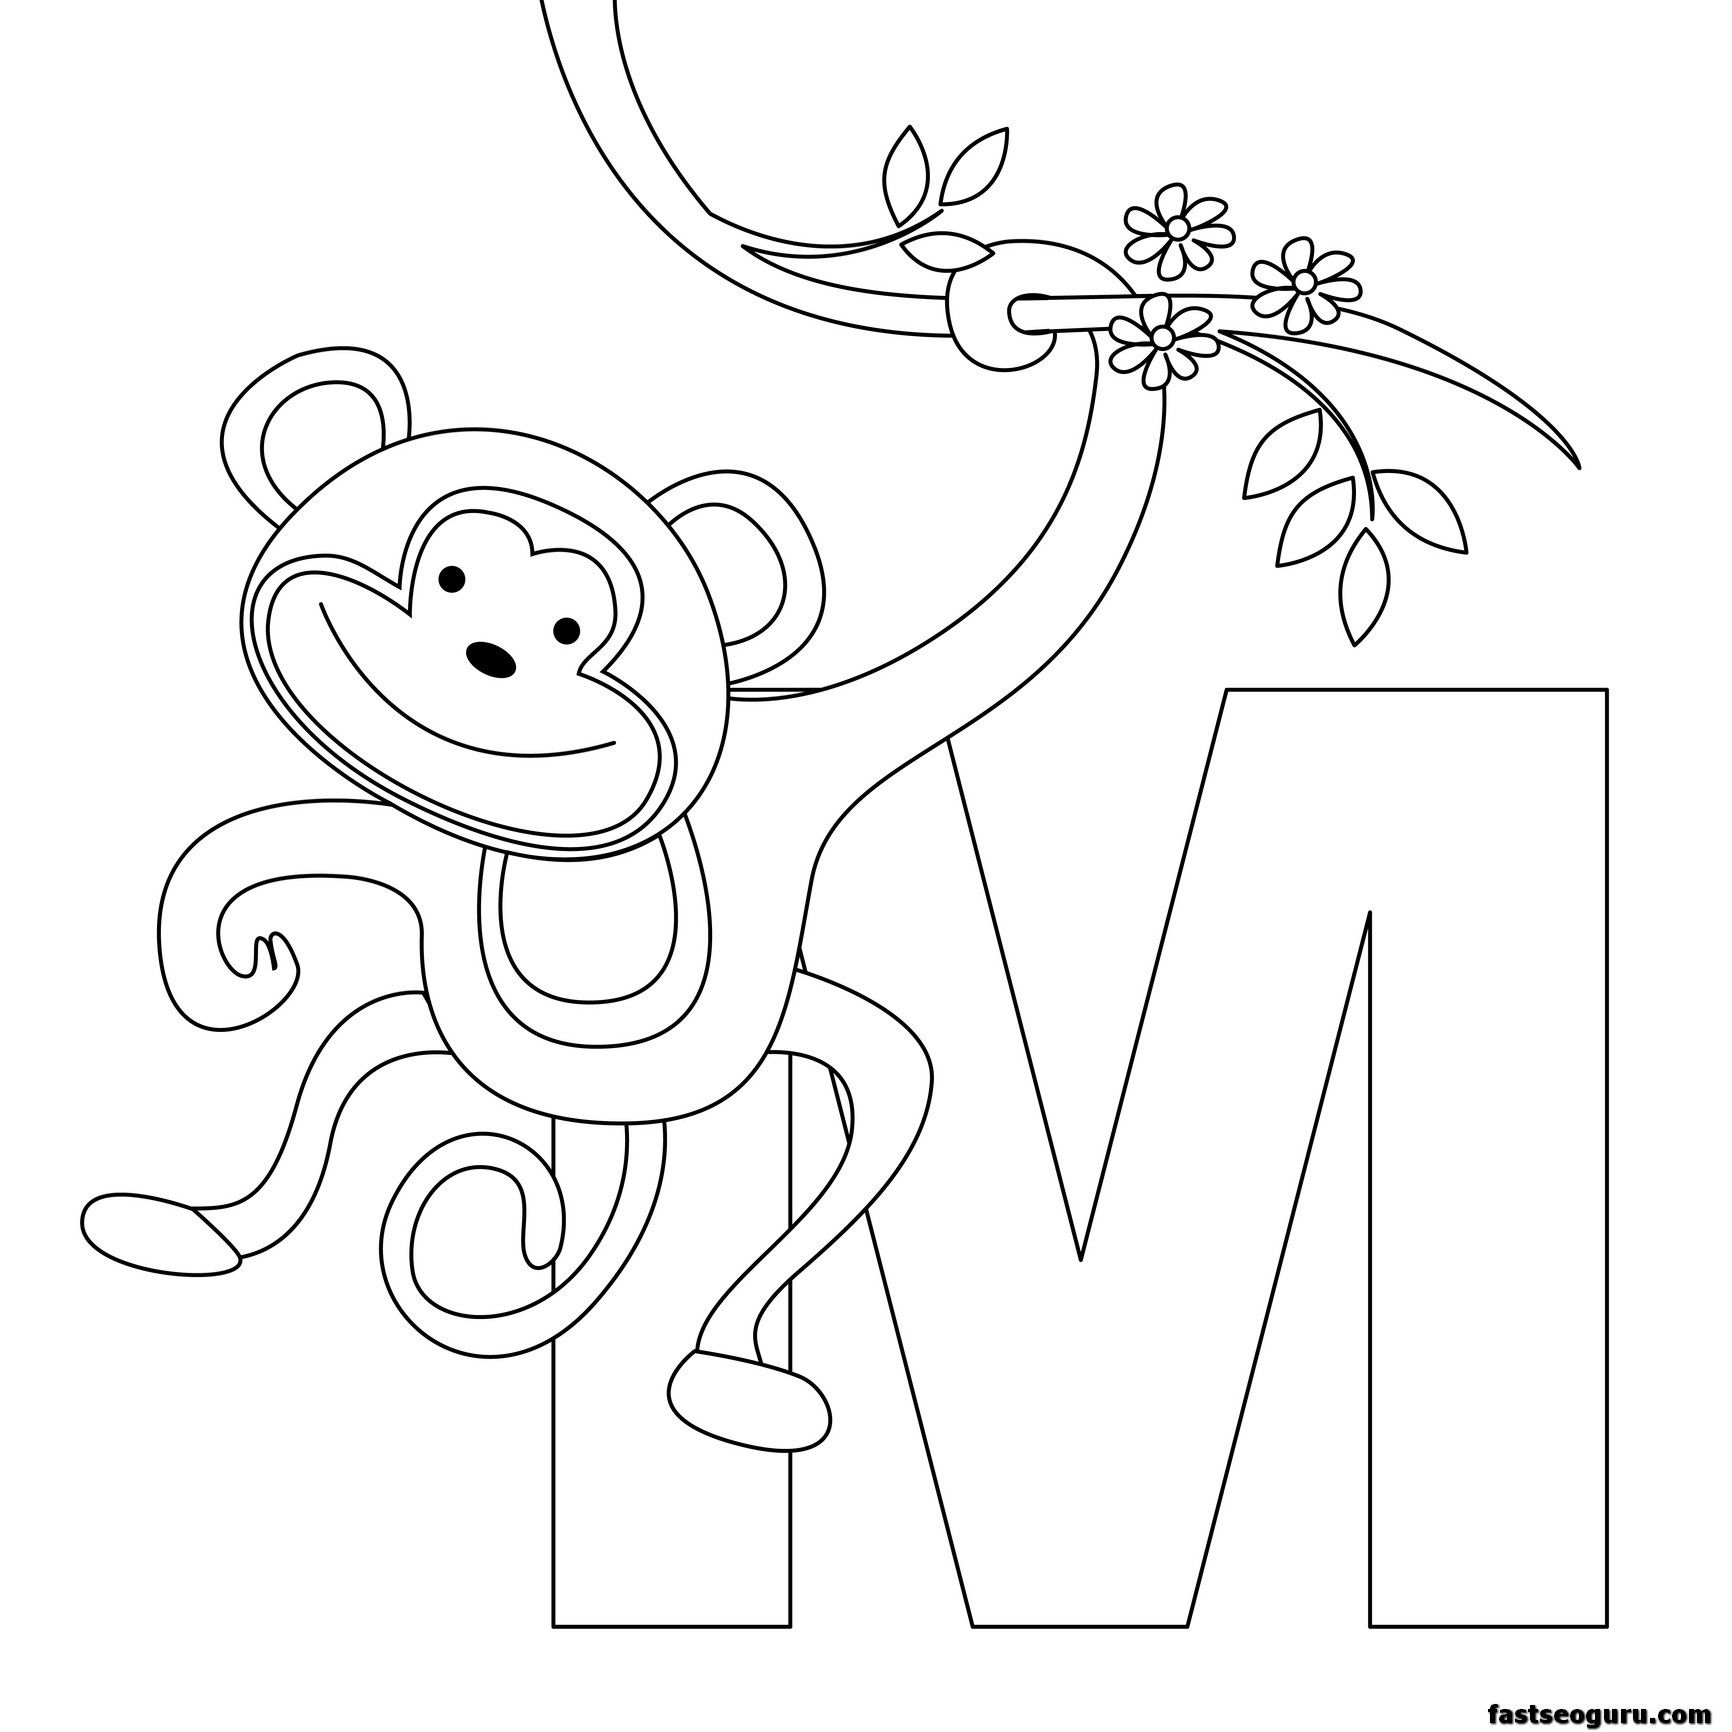 printable animal alphabet worksheets letter m for monkey alphabet coloring pagesprintable - Free Printable Alphabet Letters Coloring Pages